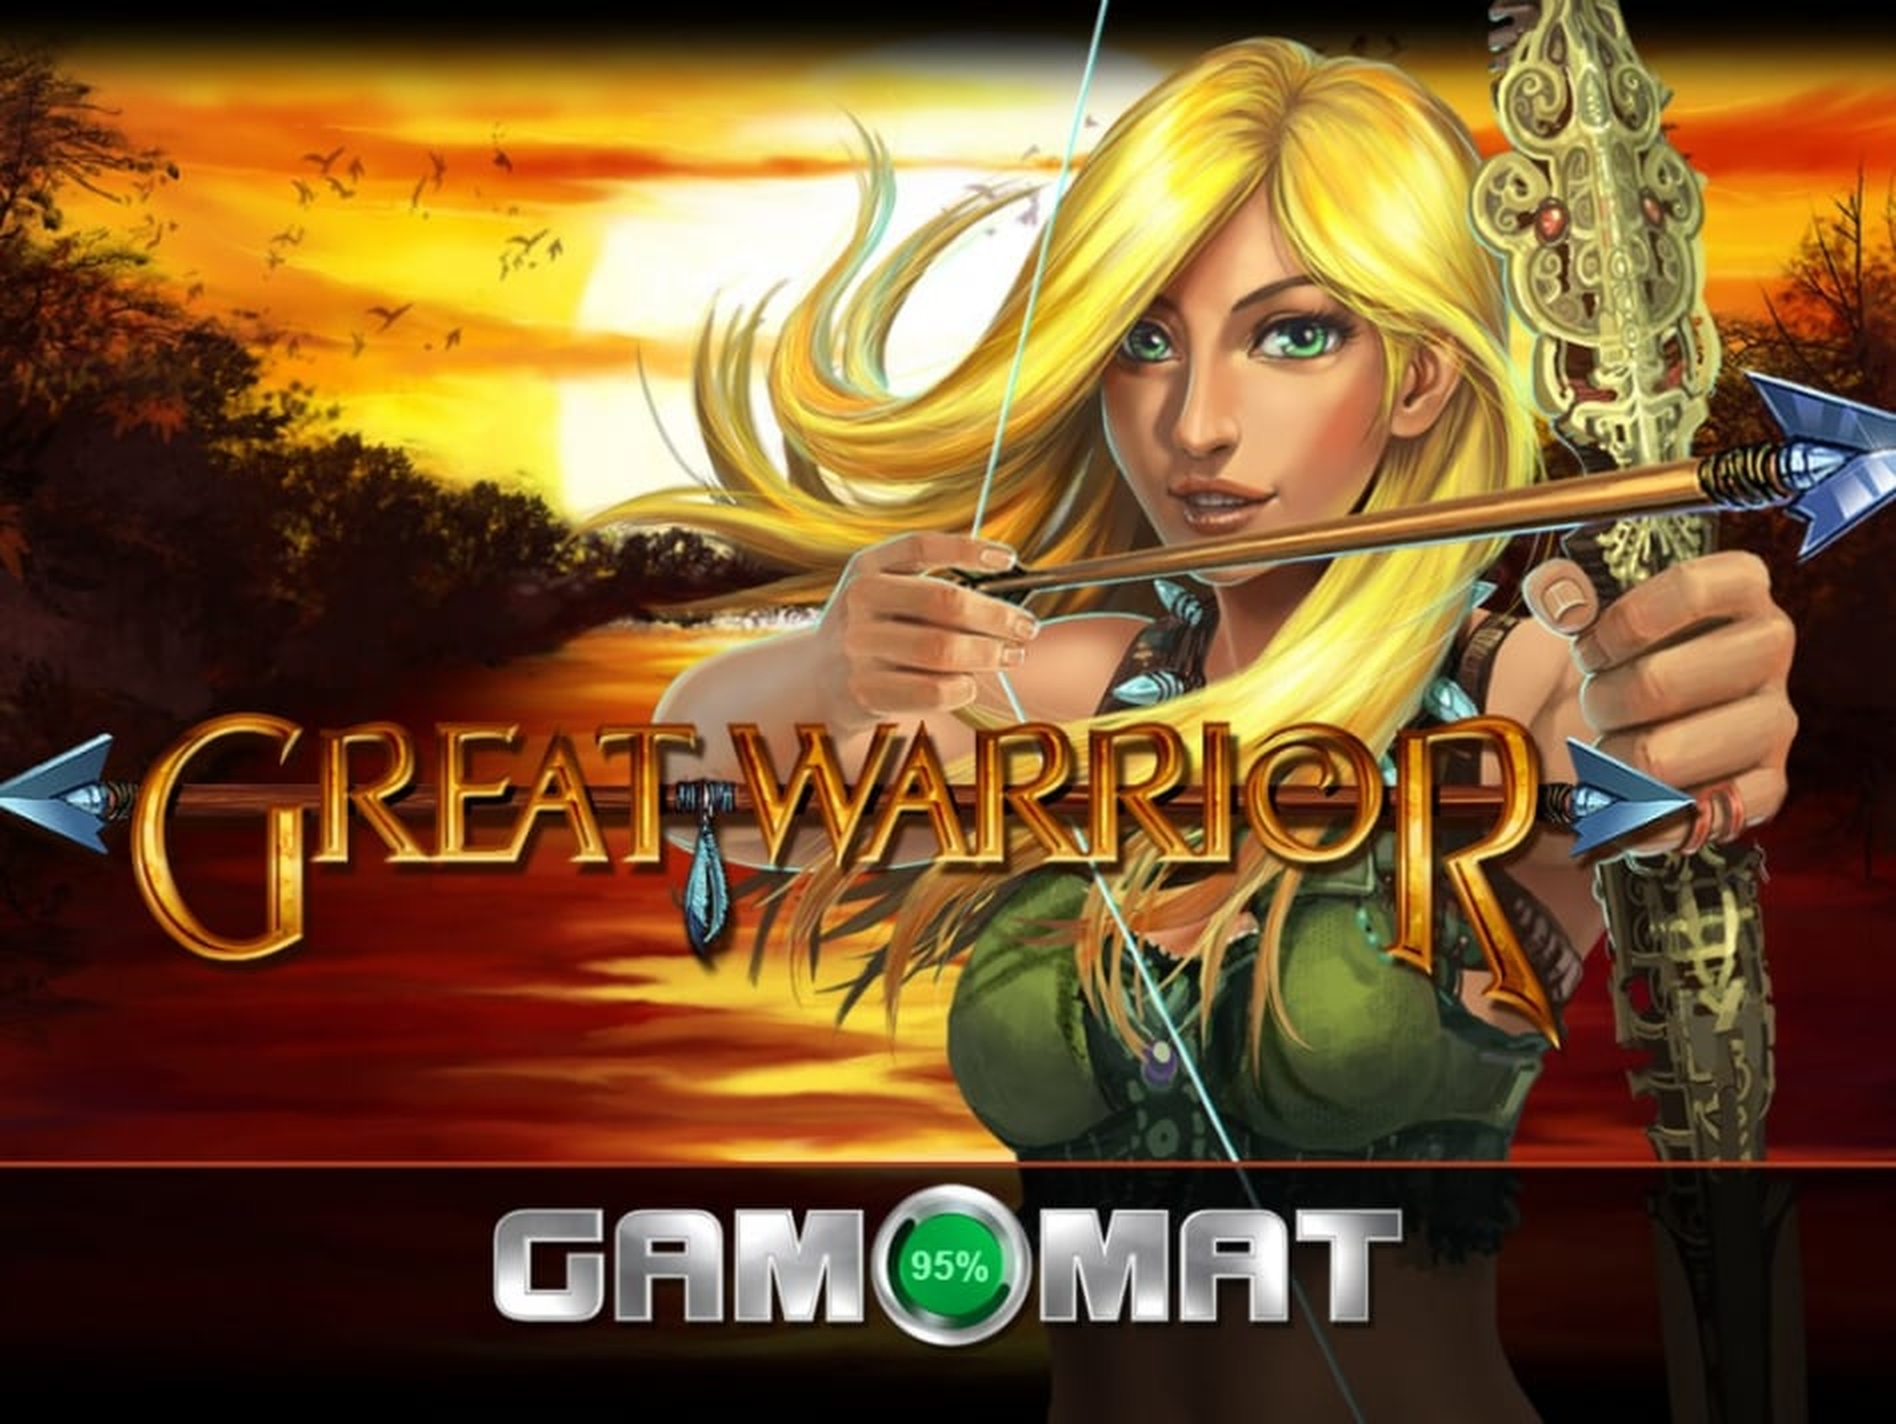 The Great Warrior Online Slot Demo Game by Gamomat